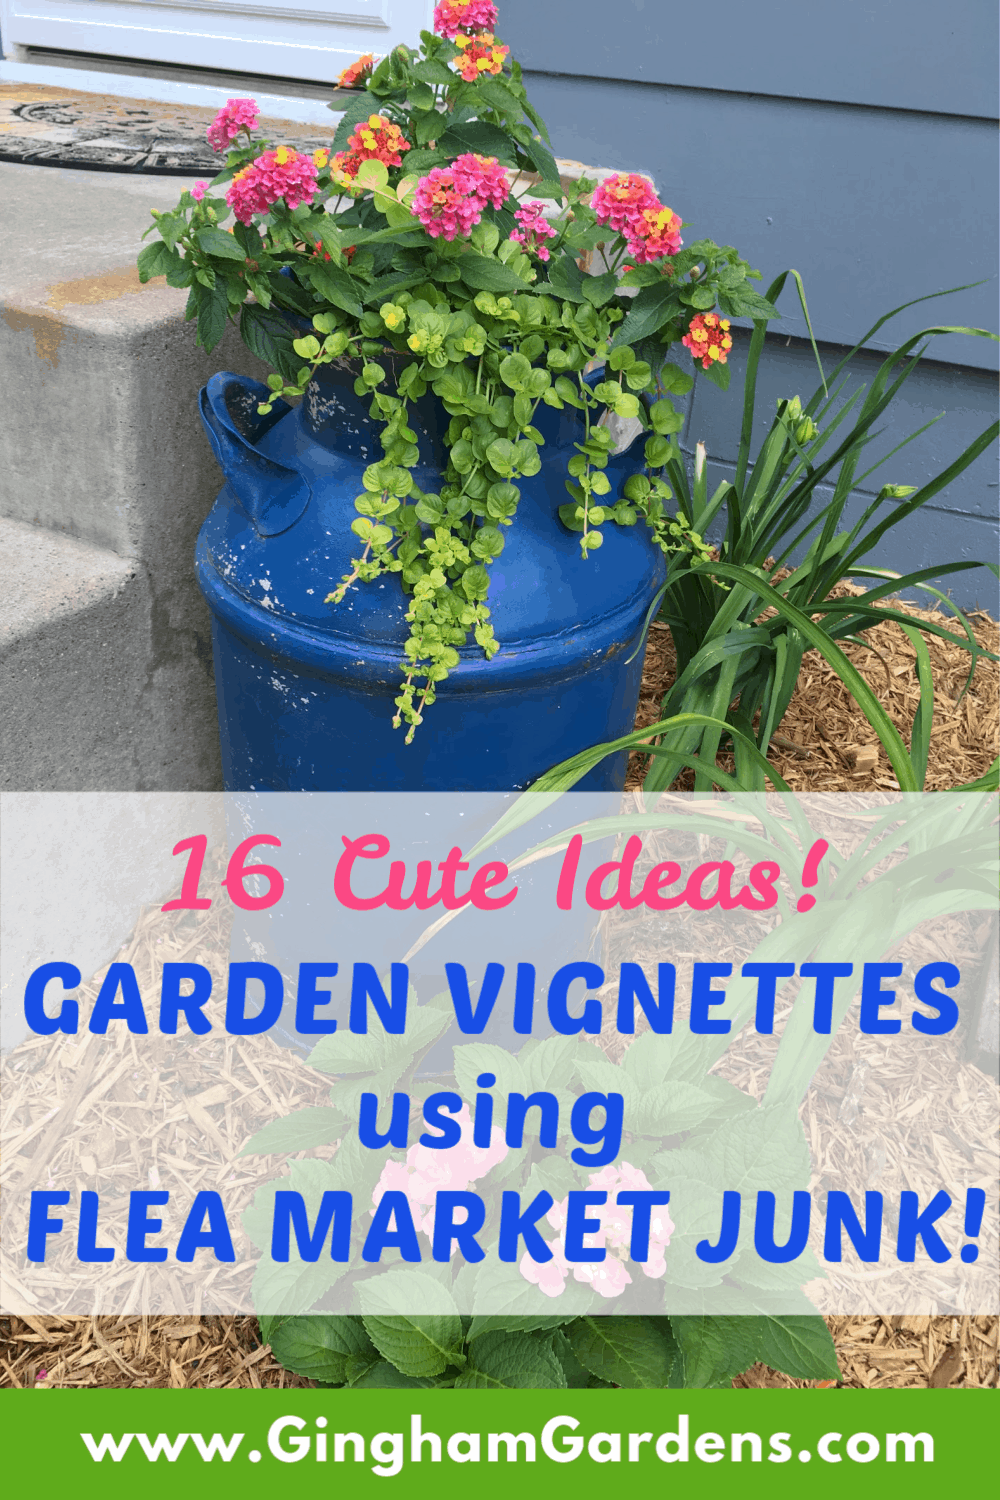 Image of Antique Milk Can with a Flower with Text Overlay - Garden Vignettes using Flea Market Finds